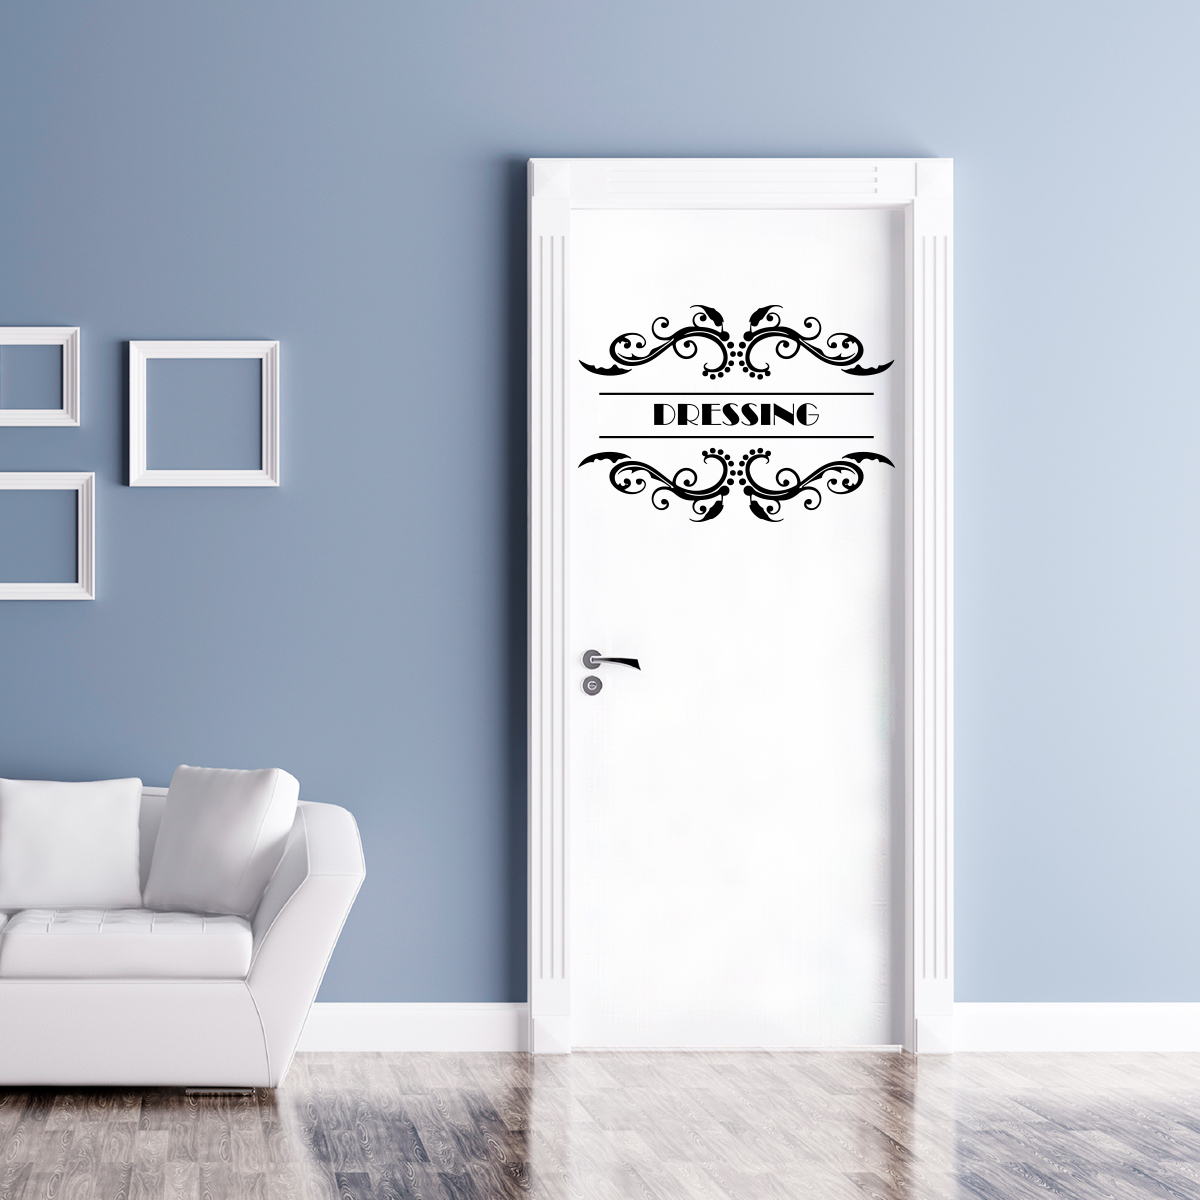 Sticker porte dressing orn stickers citations chambre for Stickers pour porte de chambre